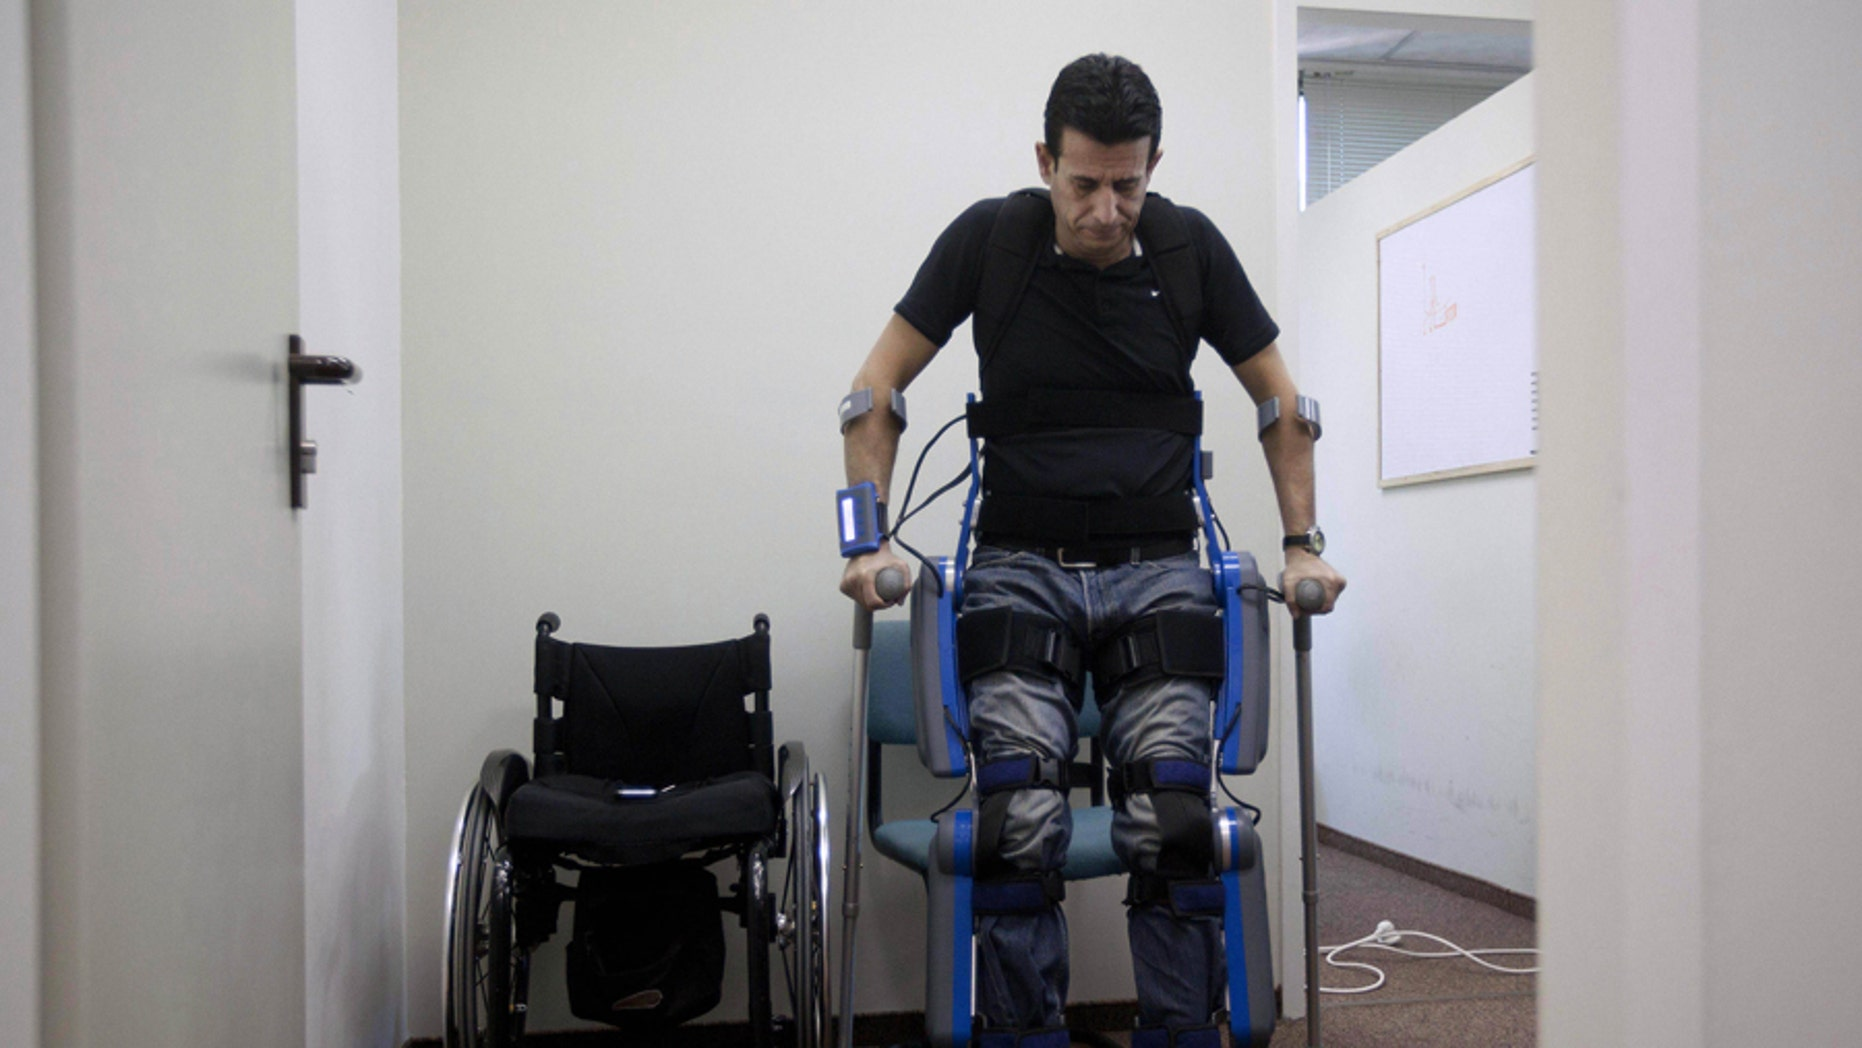 """Nov. 18: Radi Kaiuf, wounded and left paralyzed during his military service, gets up while strapped to """"ReWalk,"""" a device helping paralyzed patients stand and walk, in the northern Israeli town of Yokneam."""